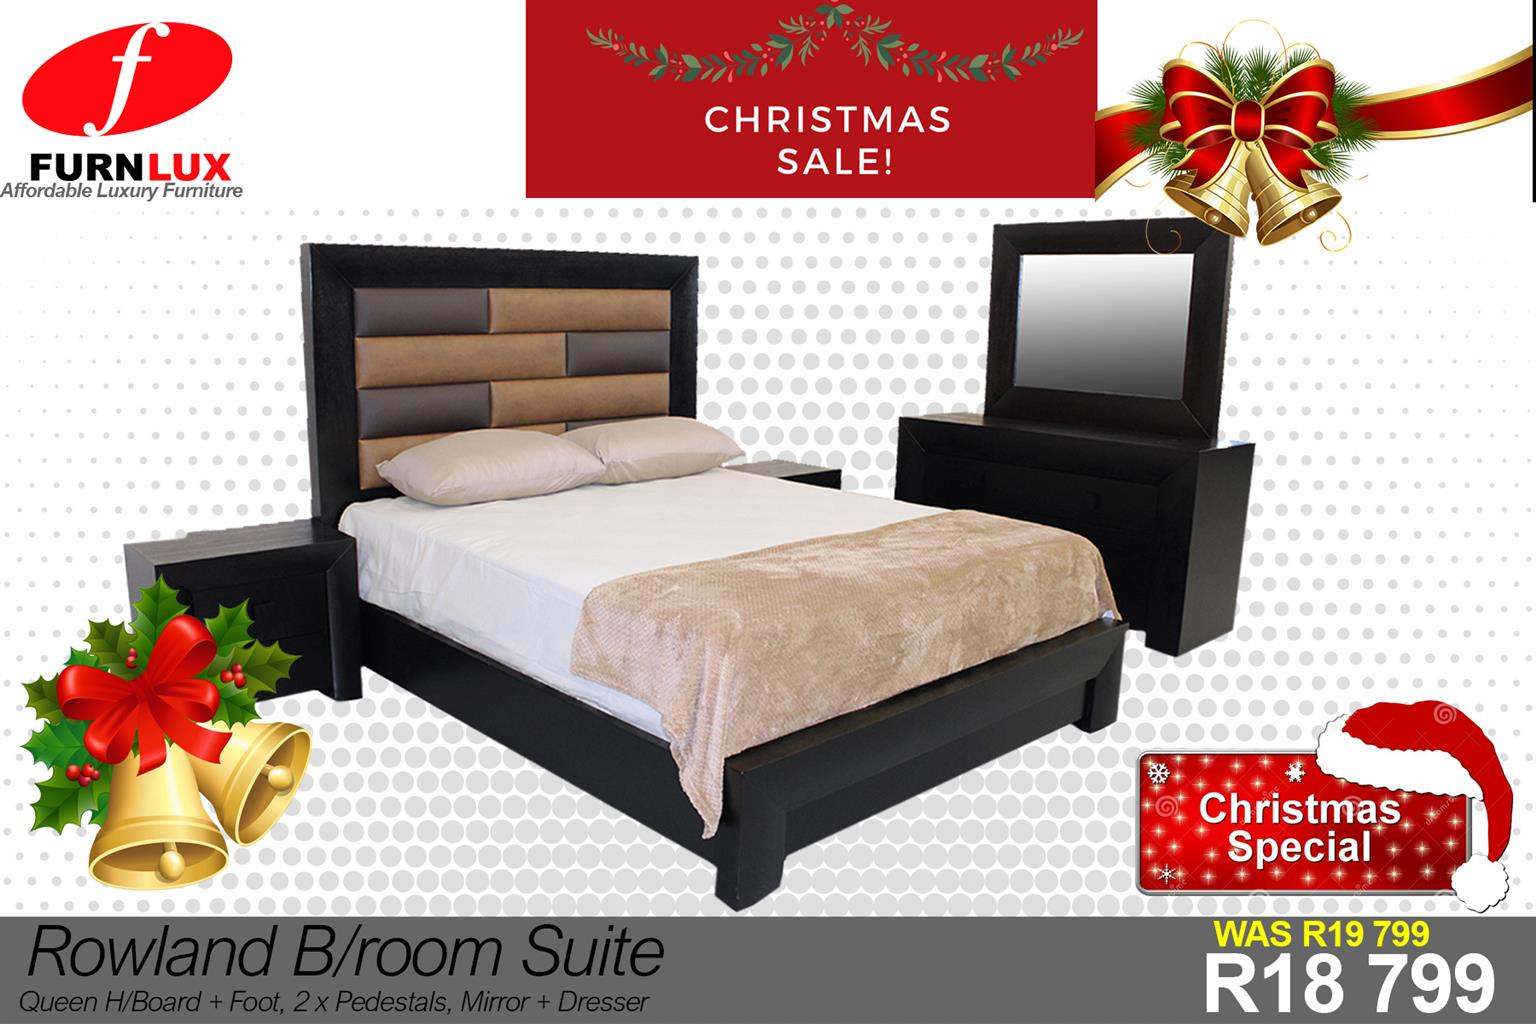 CHRISTMAS SPECIAL BRAND NEW ROWLAND BEDROOM SUITE